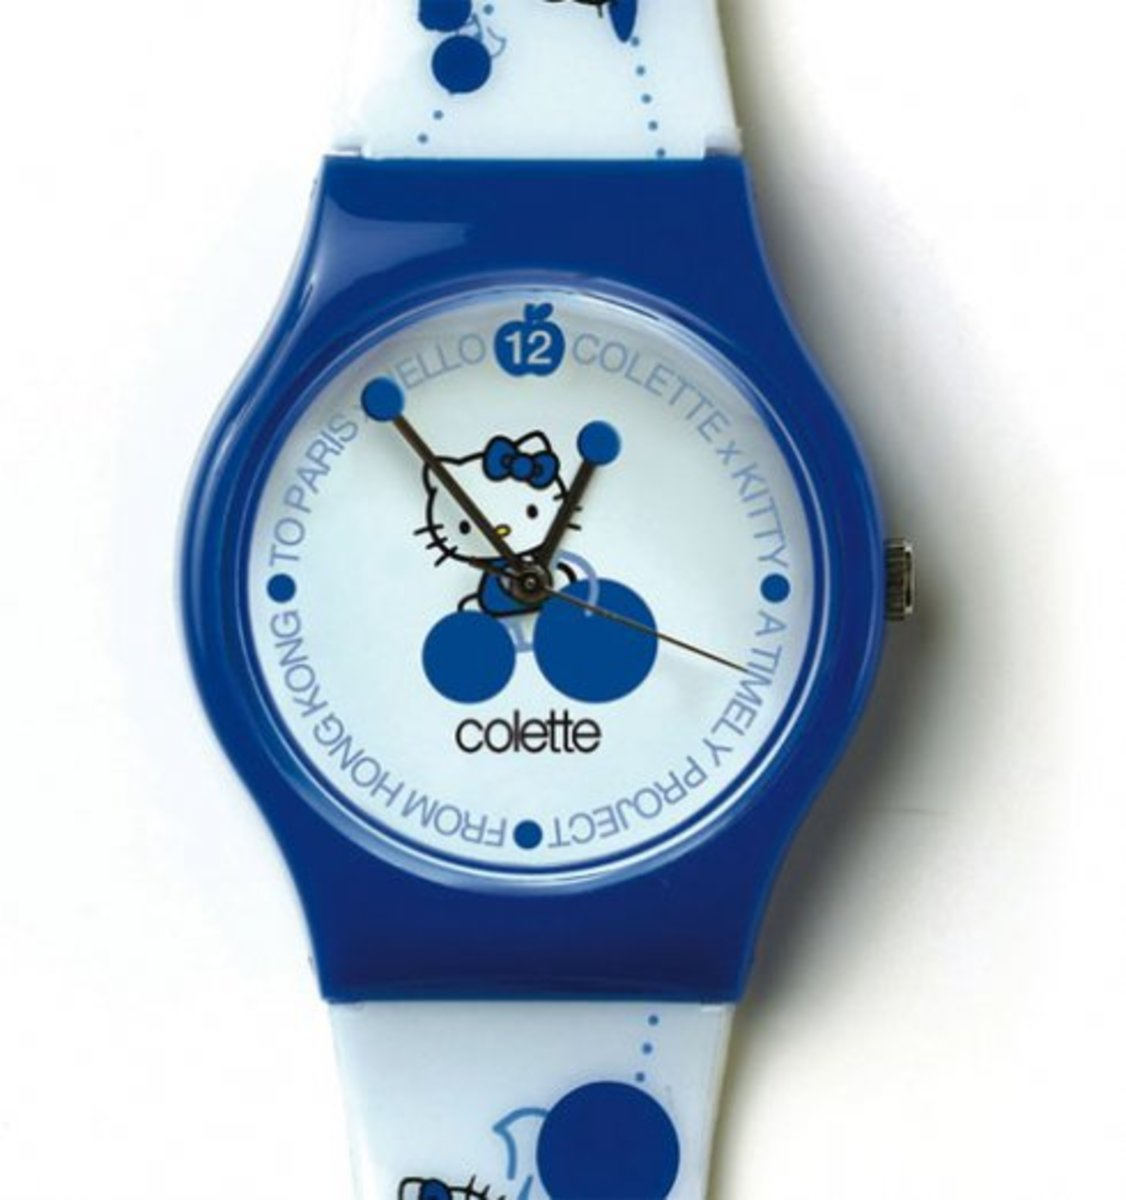 colette-silly-thing-hello-kitty-watch-2.jpg